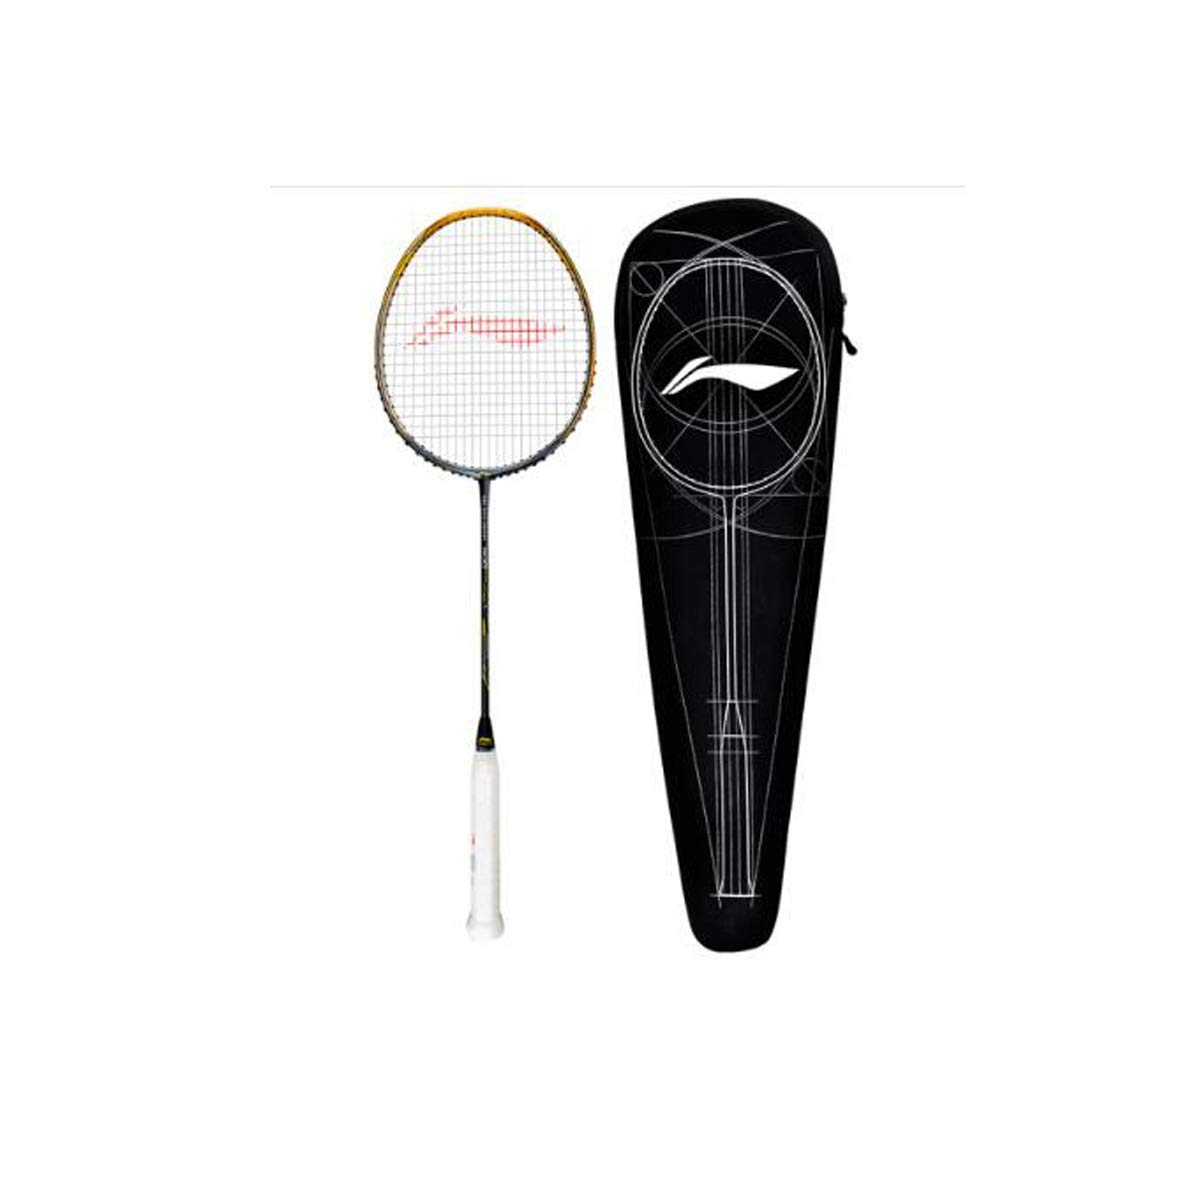 Tongboshi Badminton Racket, Single Shot, Male and Female, Adult, Beginner 3U, Full Carbon Attack and Defense, red (Threaded) Badminton Racket, (Edition : A6) by Tongboshi (Image #1)